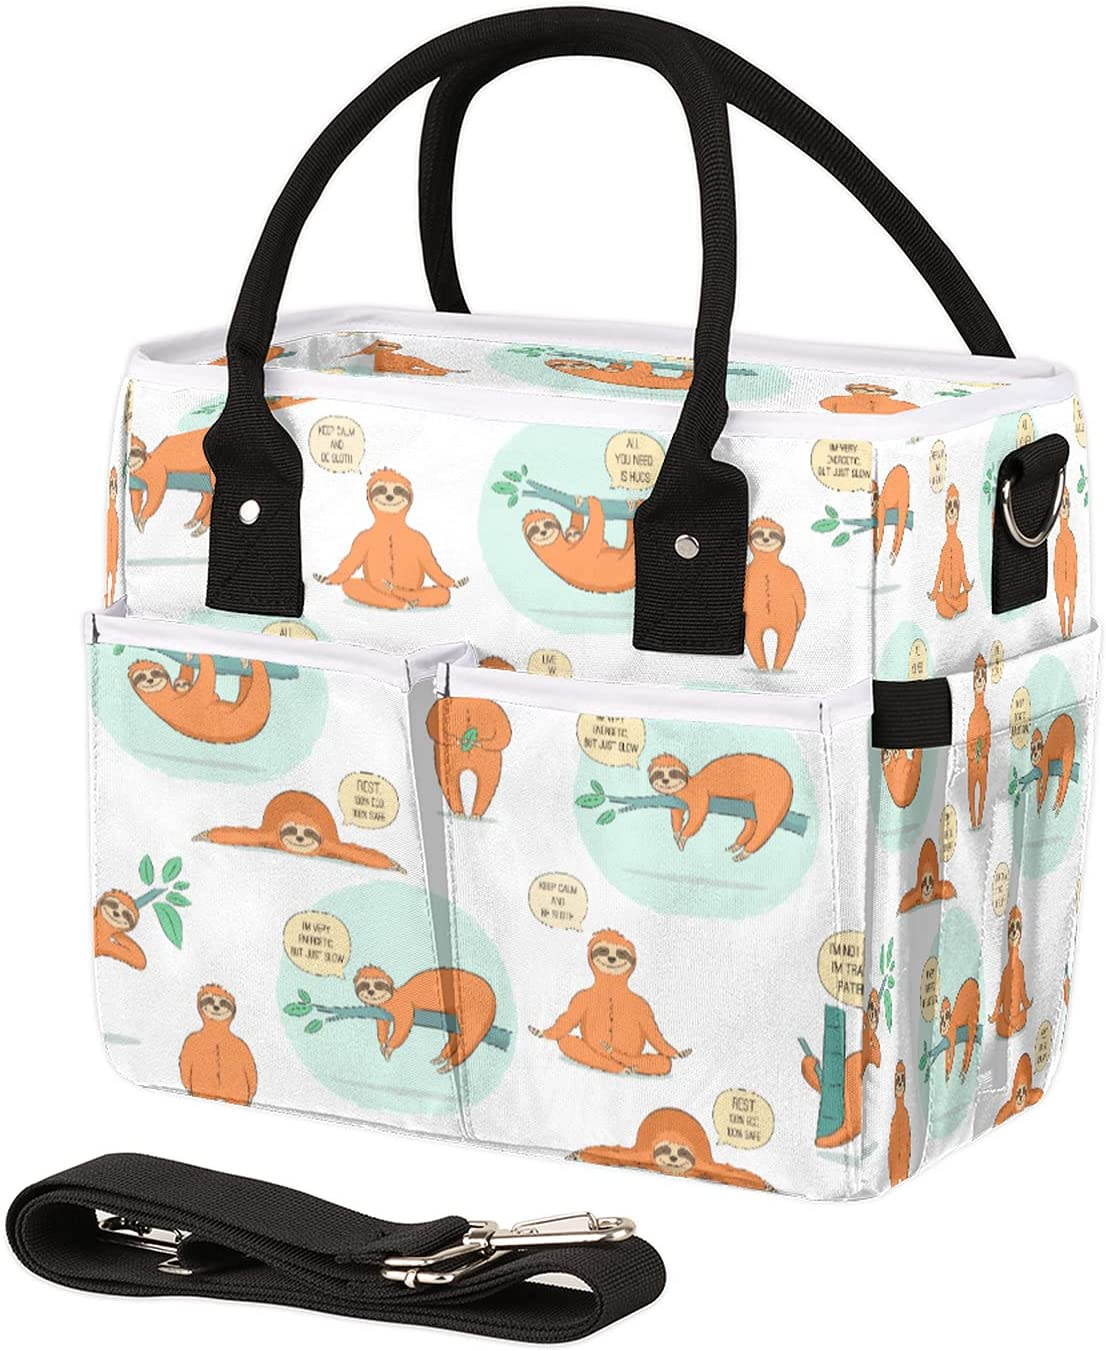 Special price Insulated Lunch Bag for Women Funny Reusable specialty shop Leakproof Sloth Men